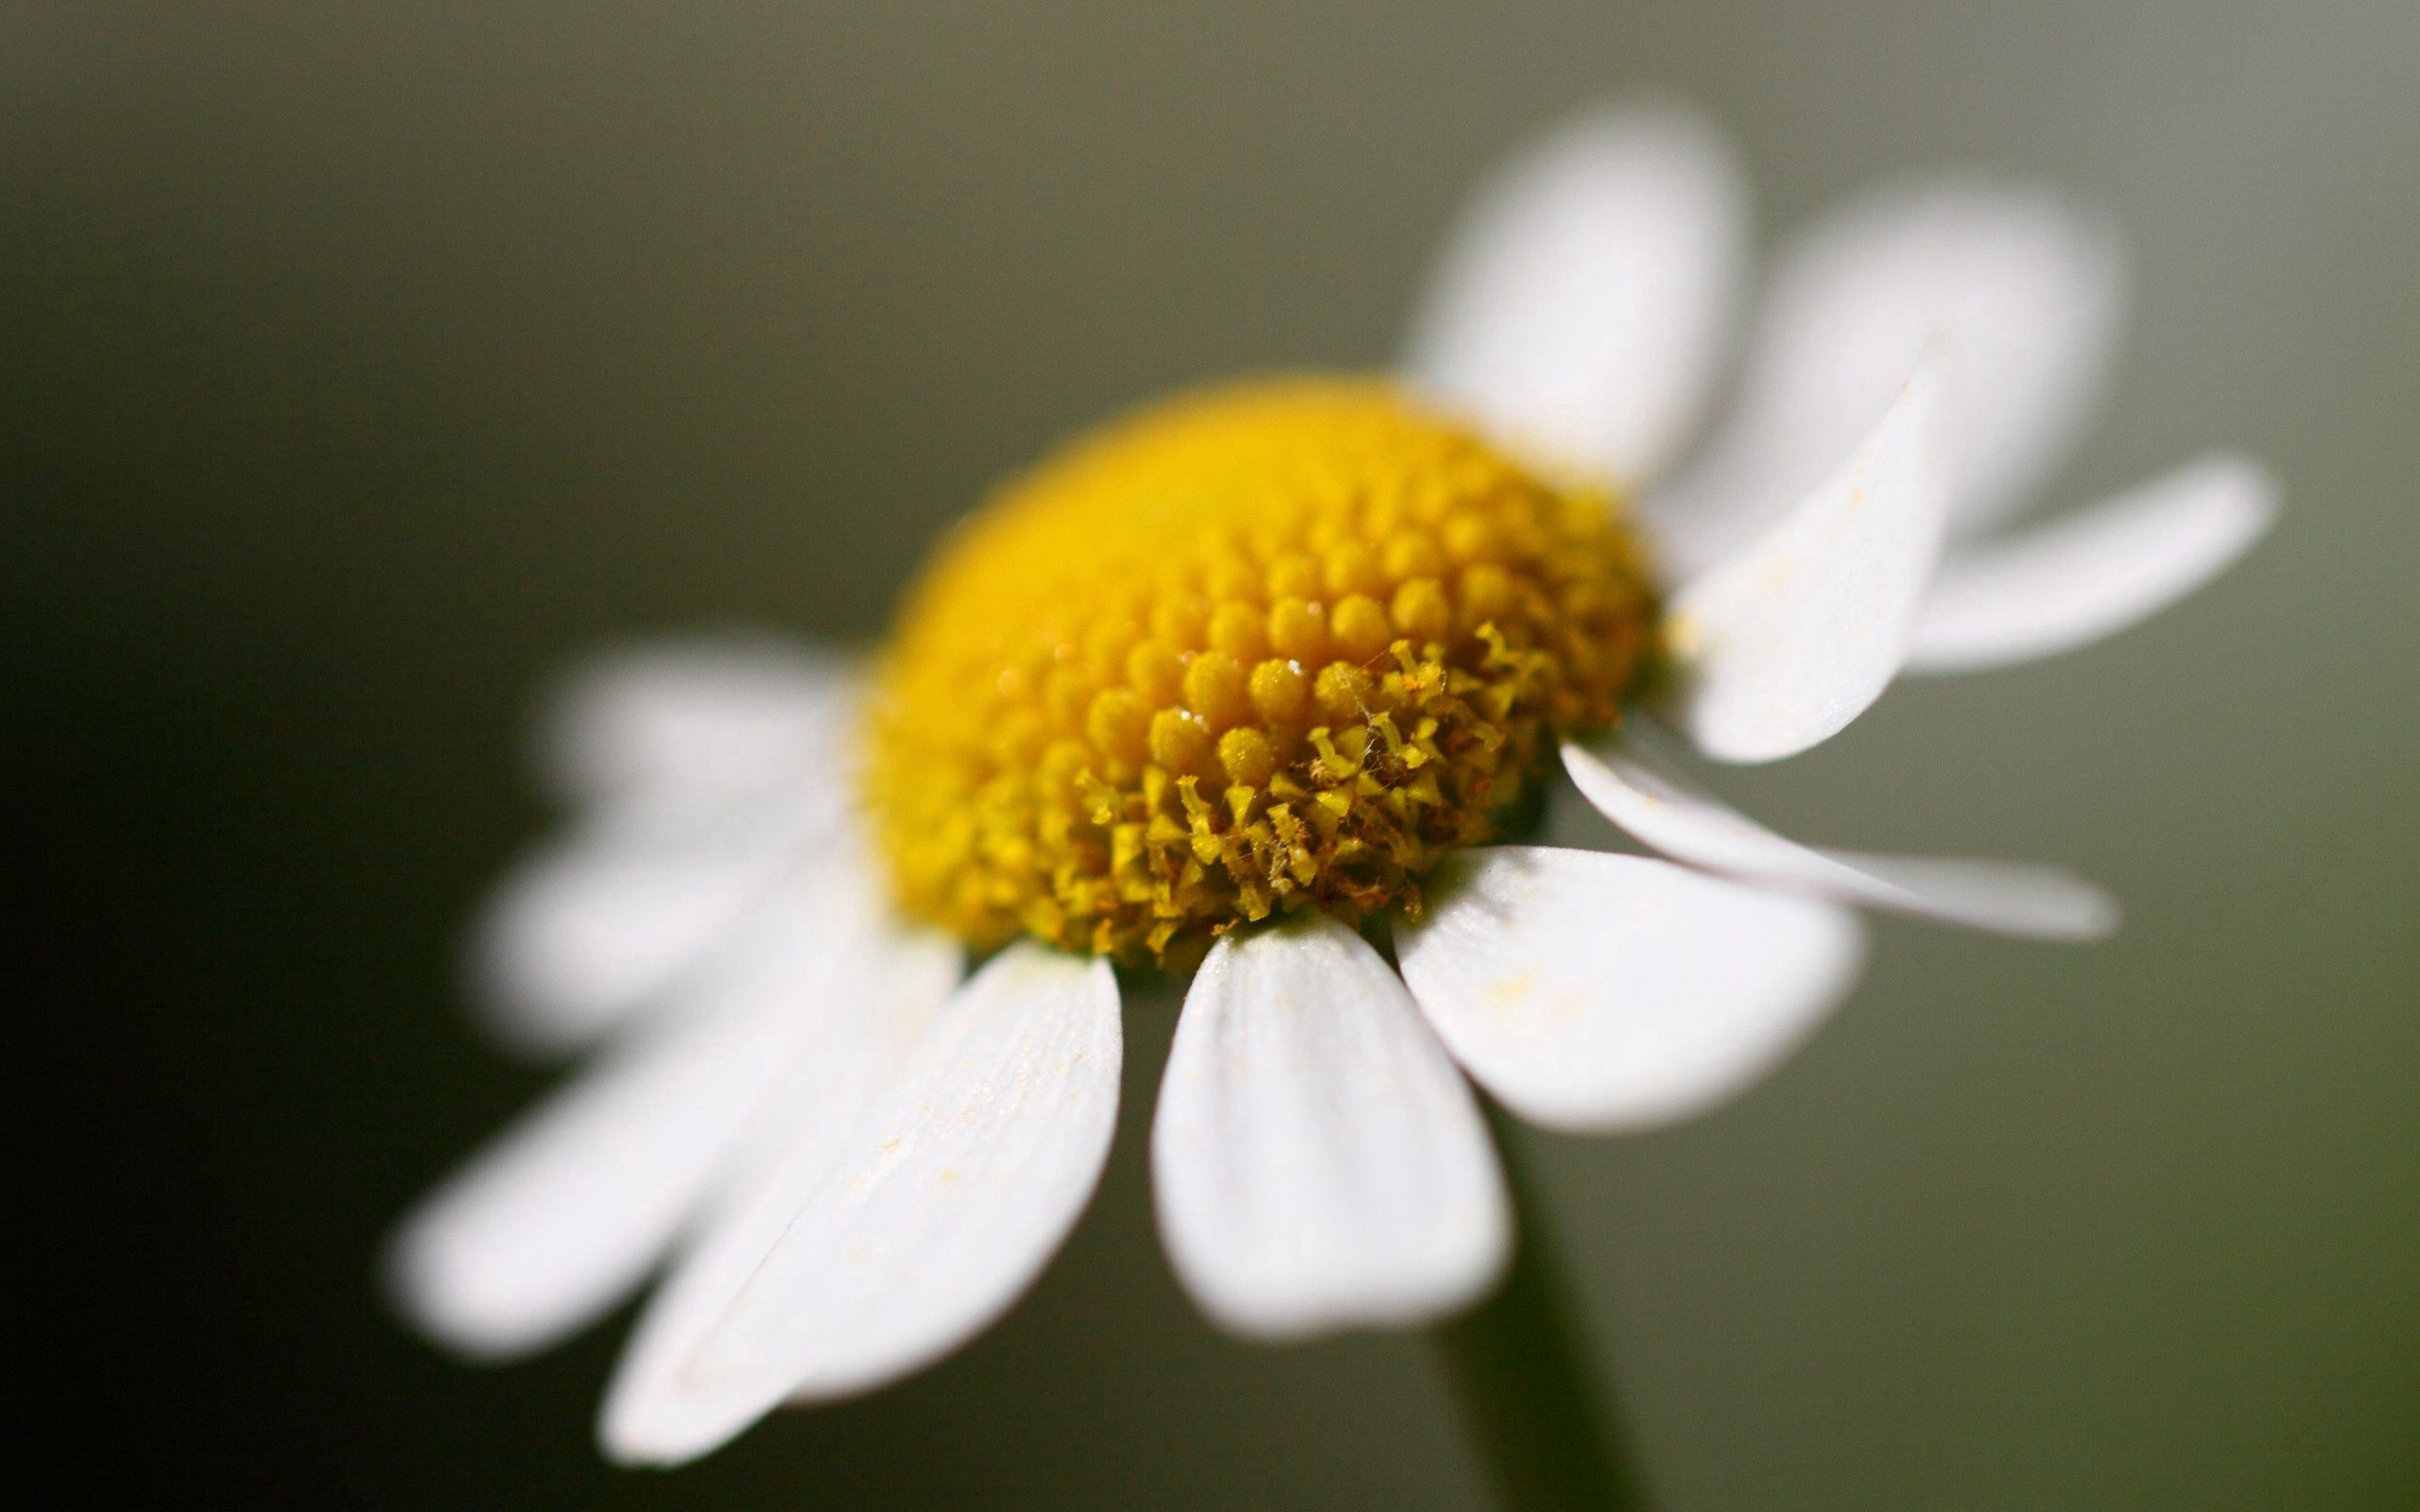 152359 download wallpaper Macro, Chamomile, Camomile, Petals, Flower screensavers and pictures for free